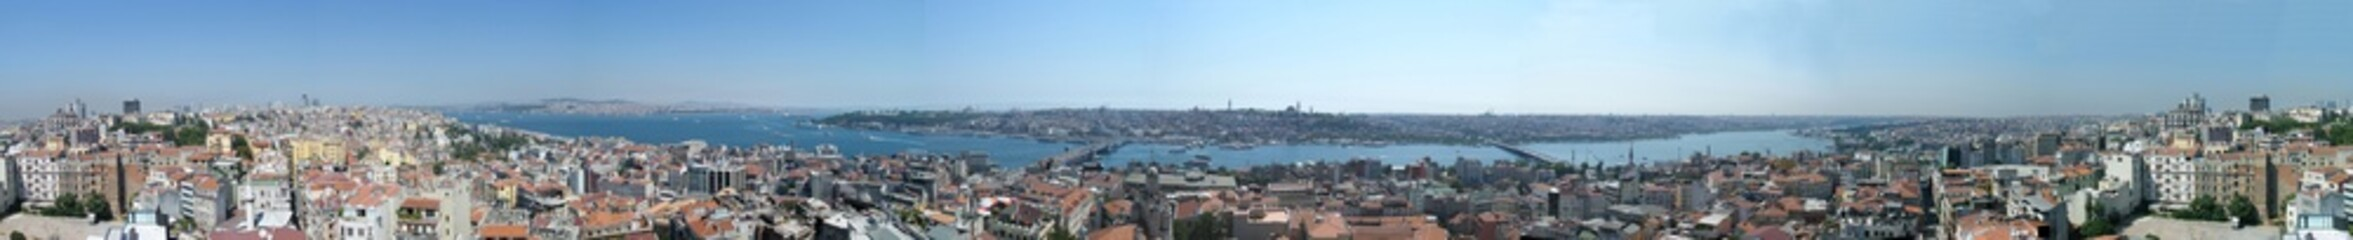 Galata Bridge and Bosphorus panoramic